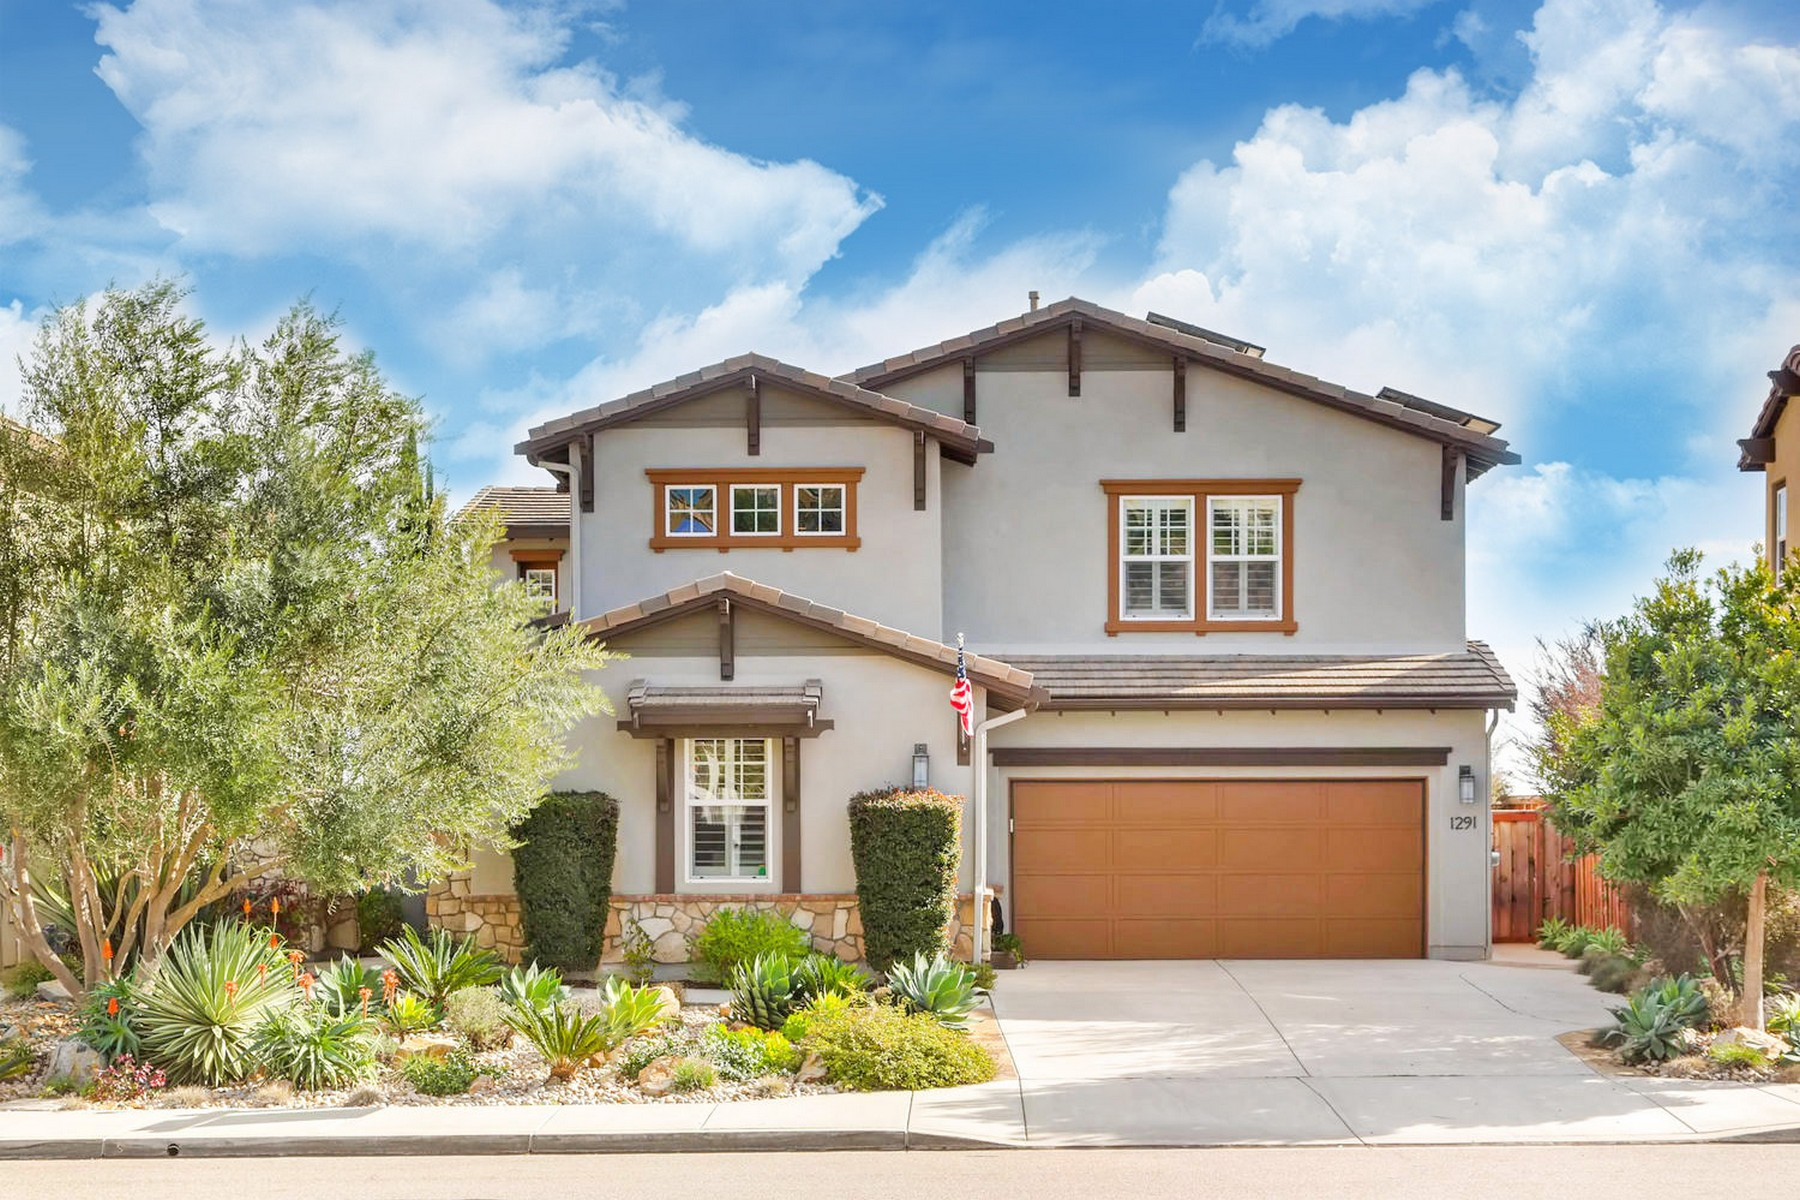 Single Family Home for Active at 1291 Holmgrove Drive 1291 Holmgrove Dr San Marcos, California 92078 United States